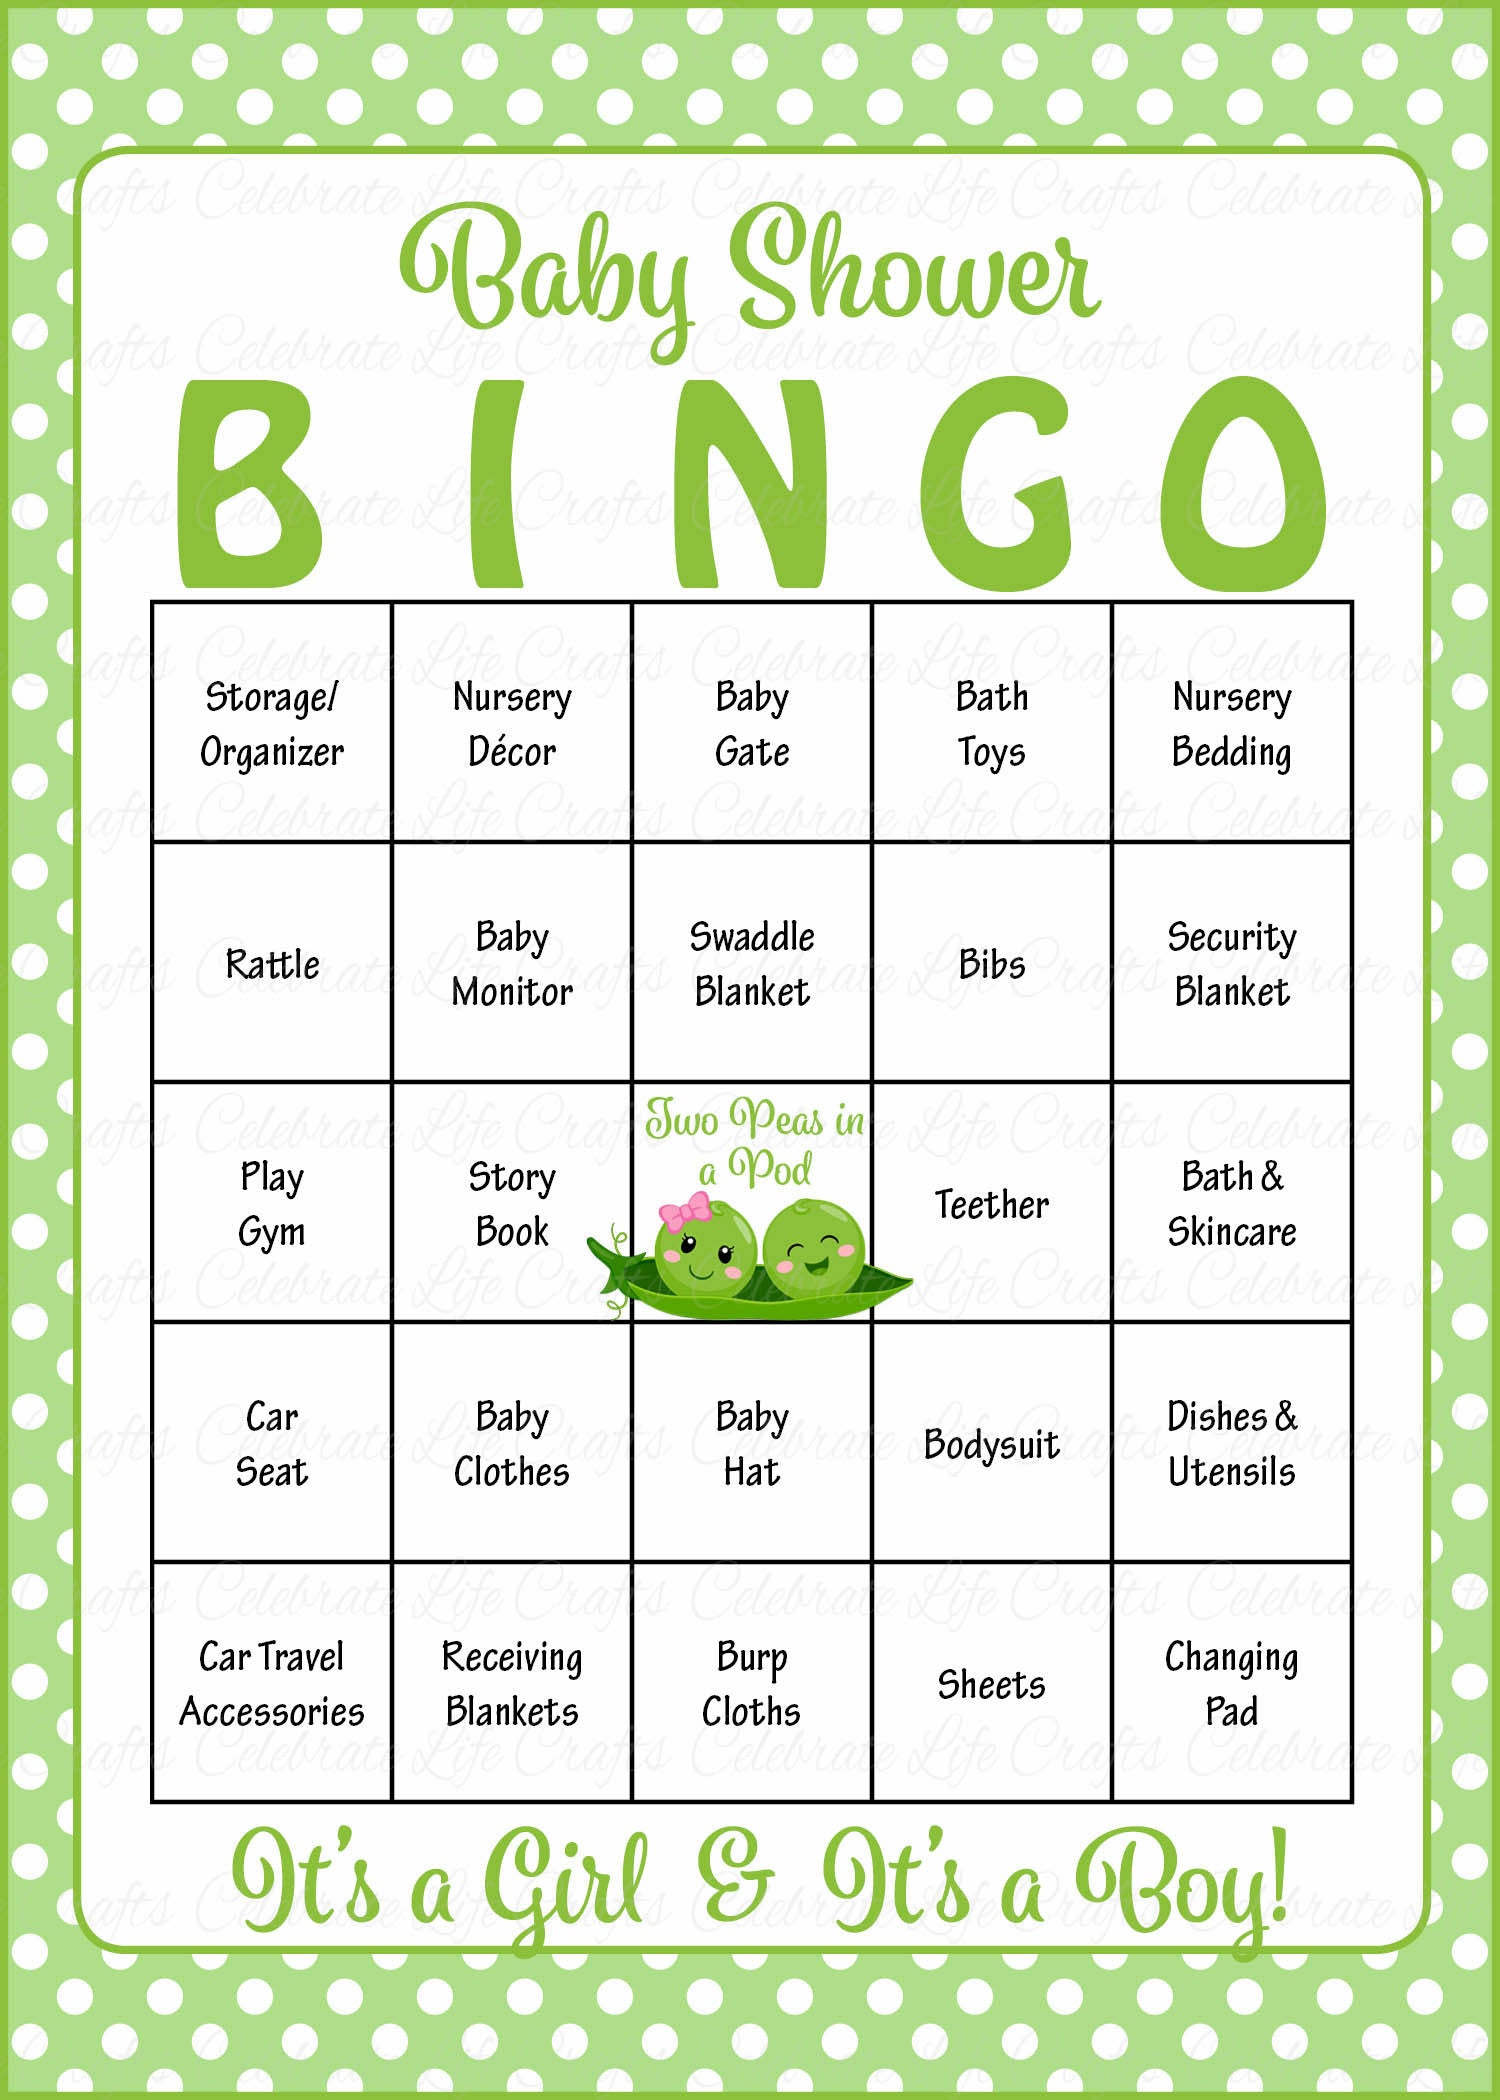 Peas In A Pod Baby Bingo Cards   PRINTABLE DOWNLOAD   Prefilled   Baby  Shower Game For Boy Girl Twins   B29003.